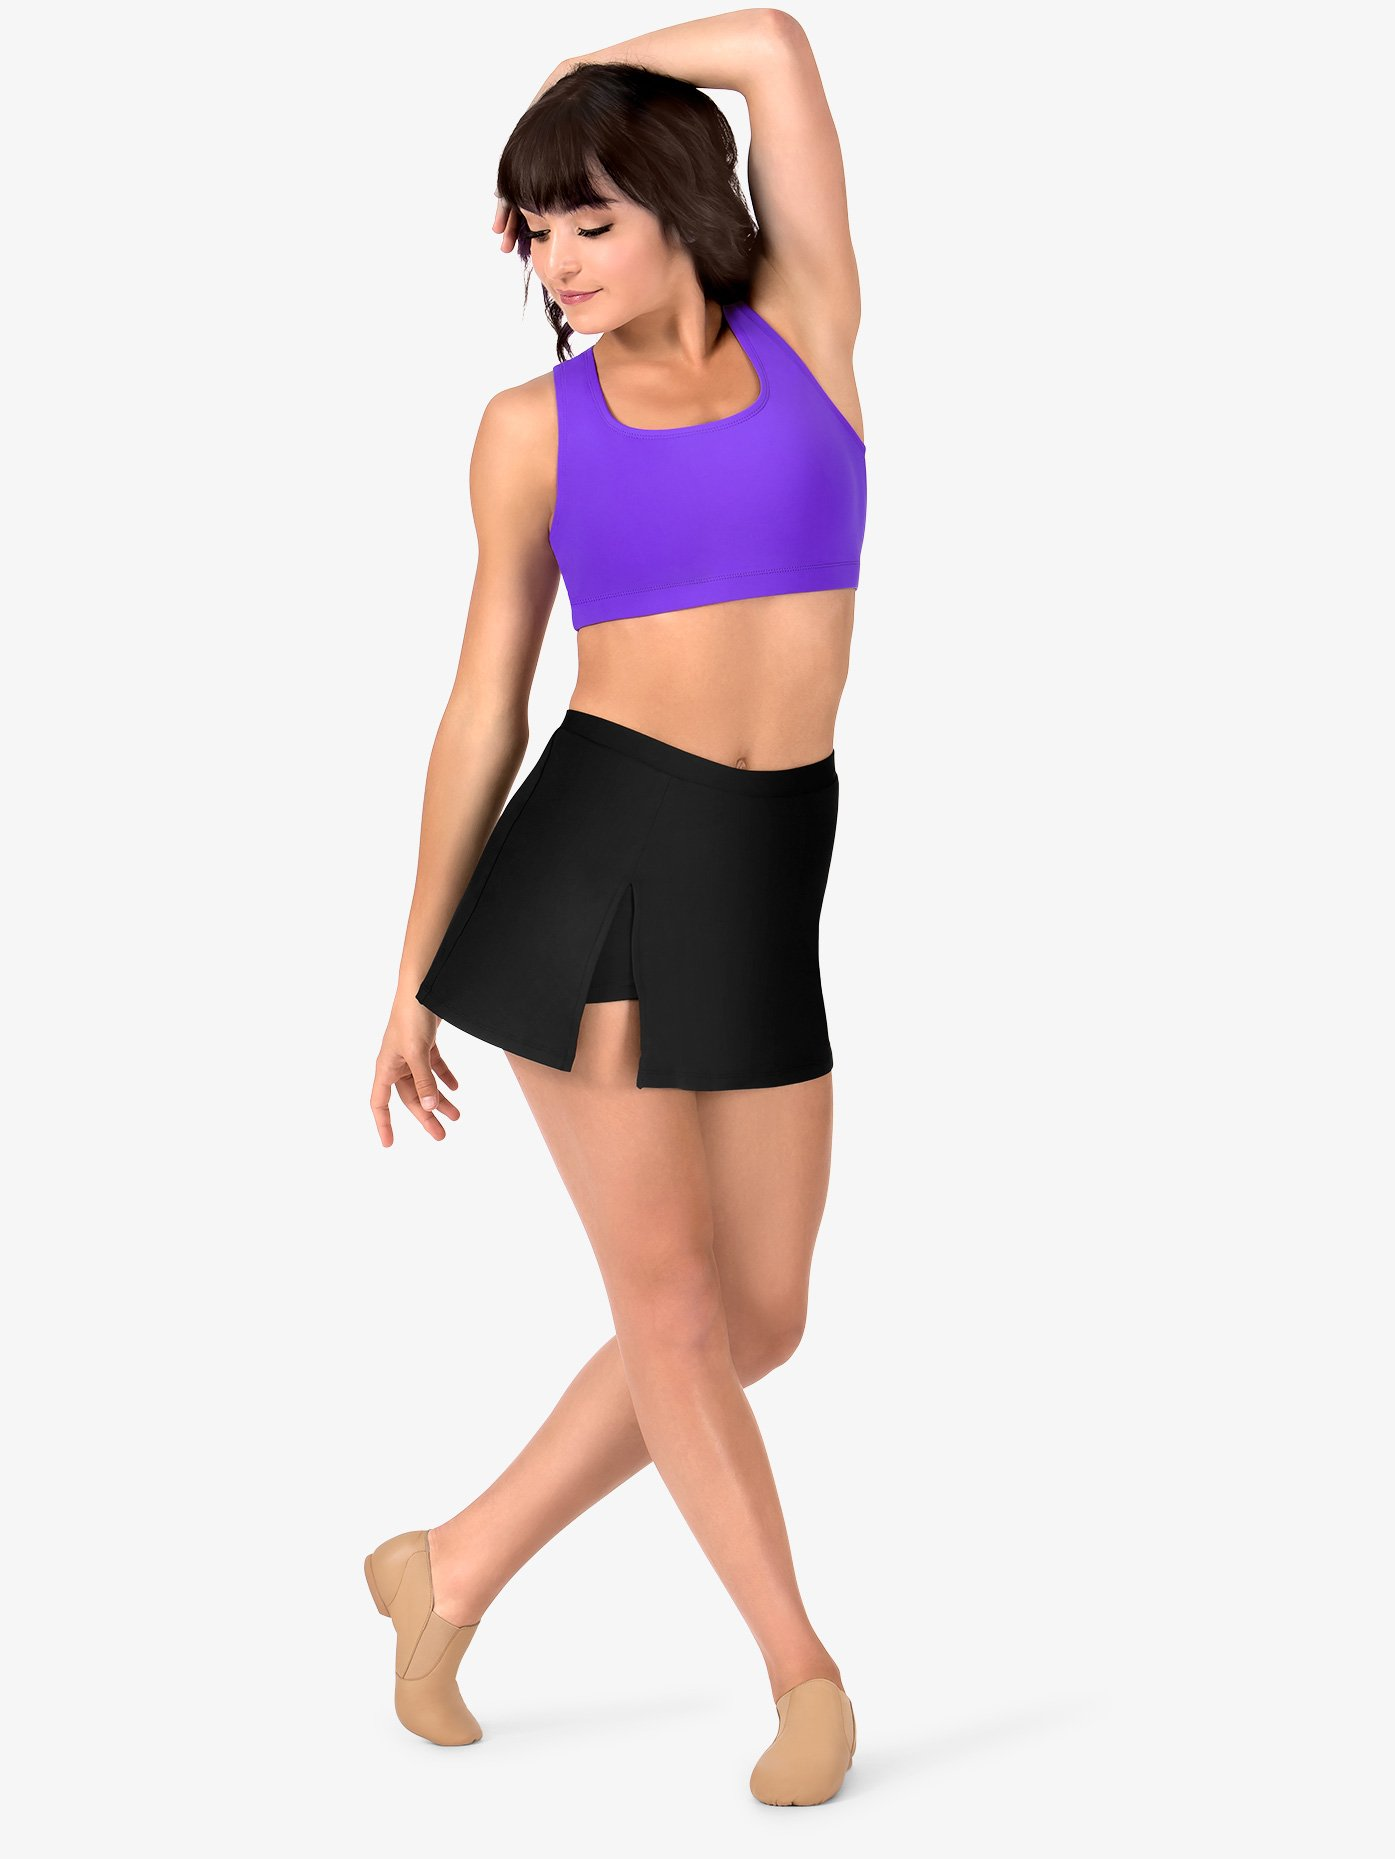 963b0f1ba9aa6 Womens Team Basic Compression Dance Skort - Style No BT5206. Loading zoom